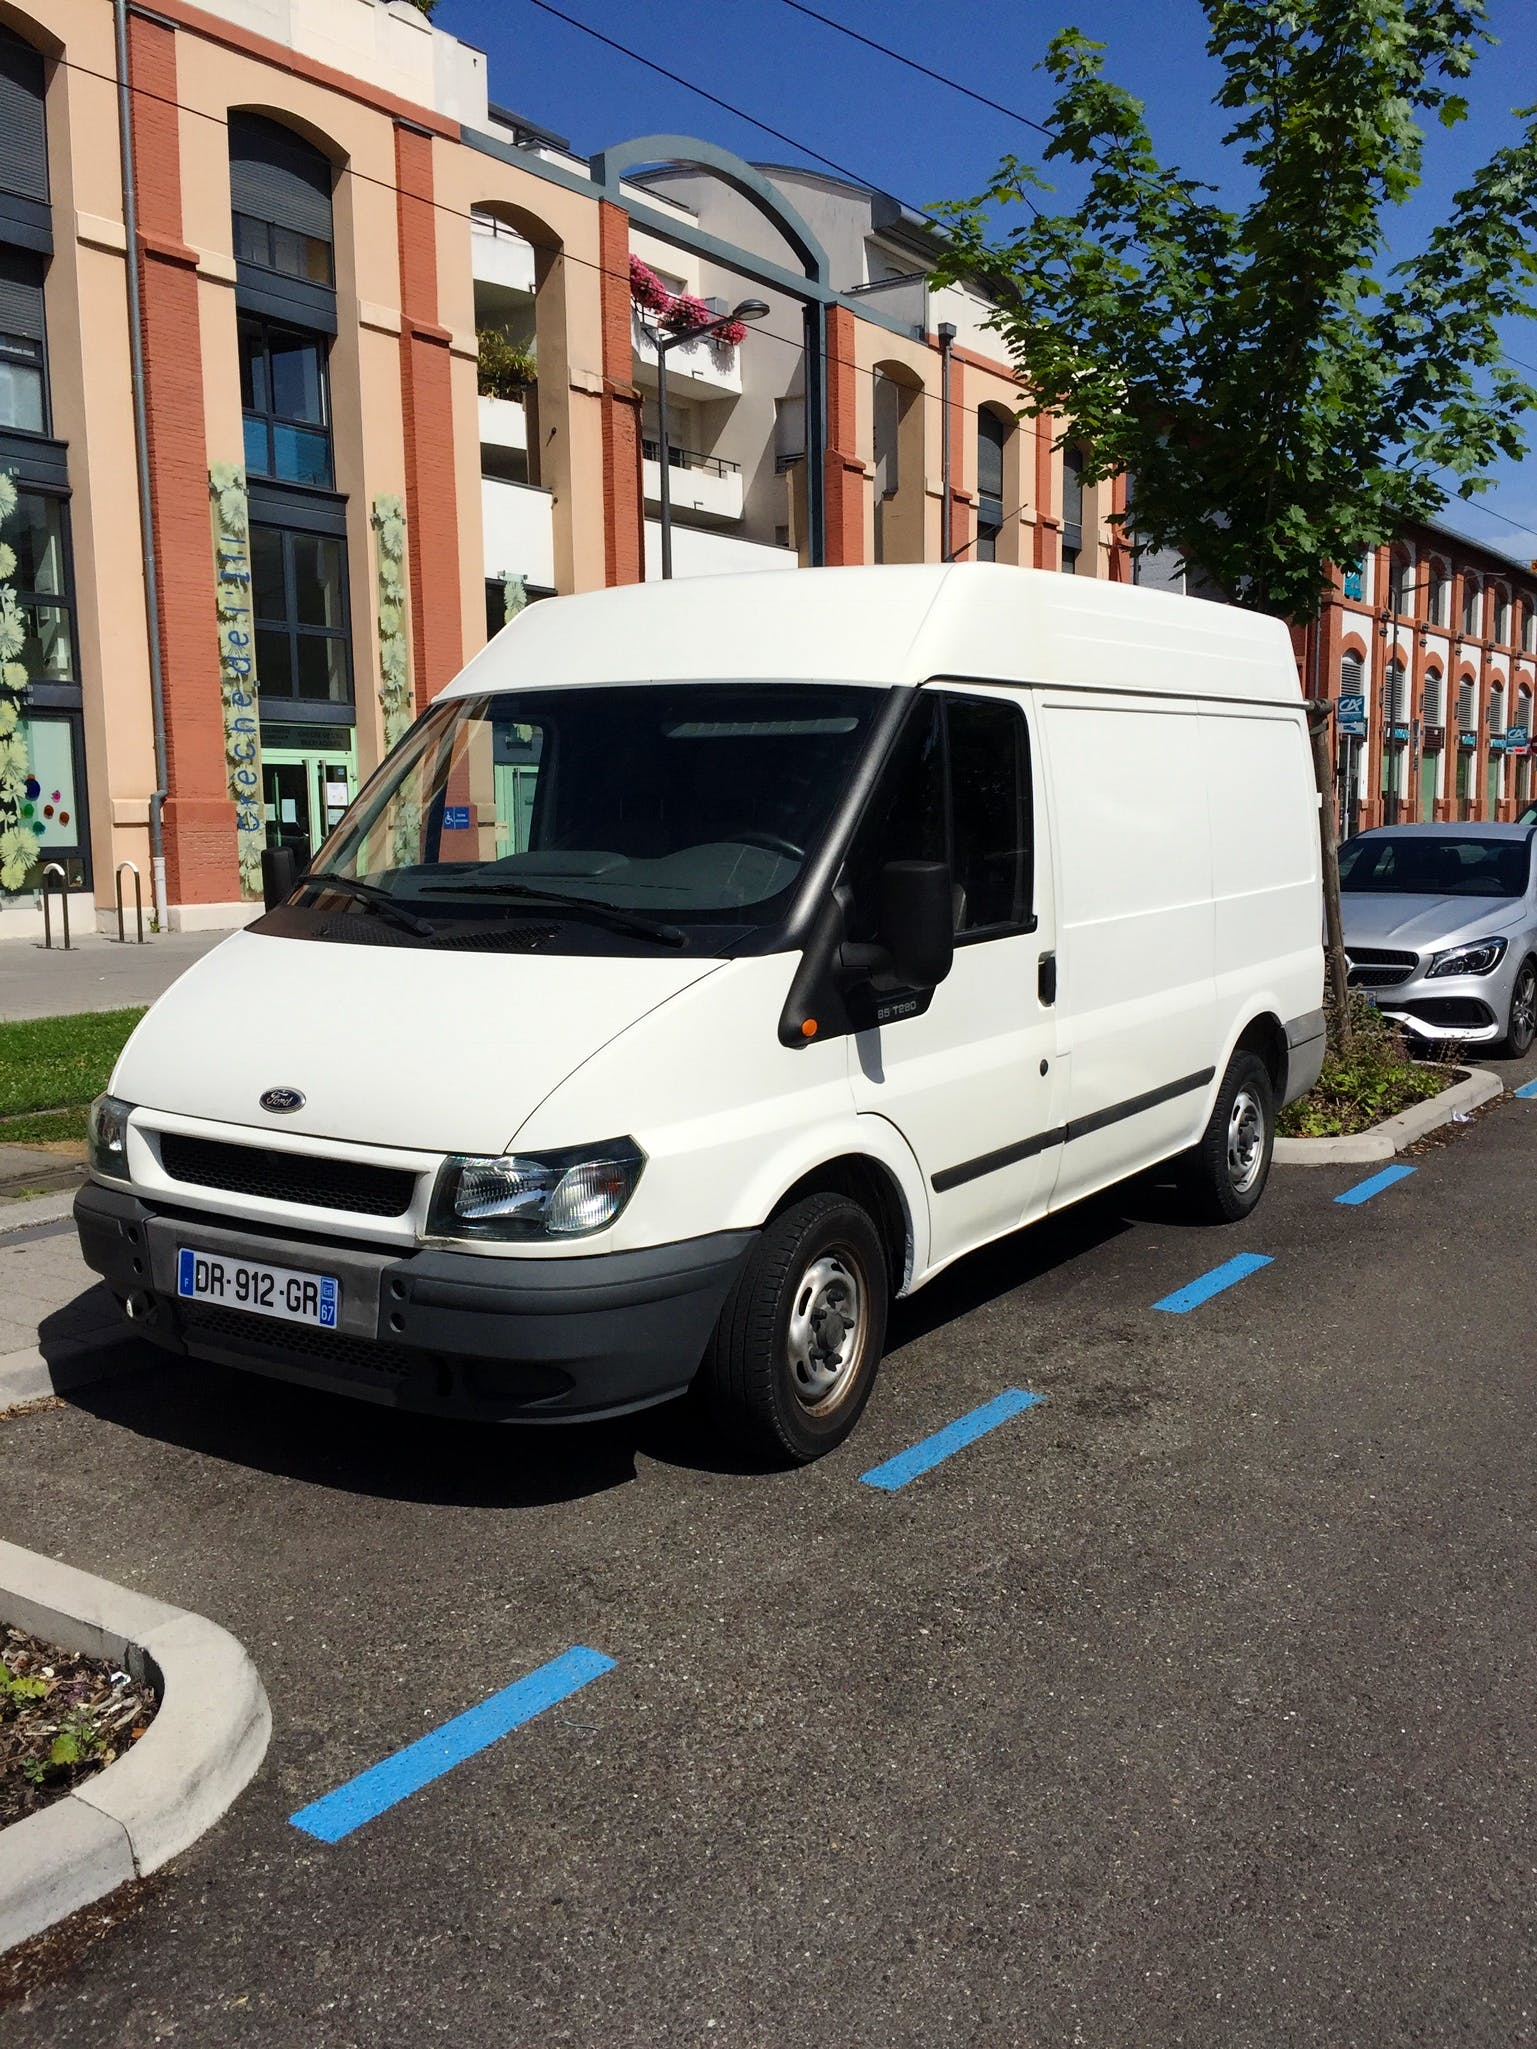 Ford Transit Fourgon 85t280, 2006, Diesel